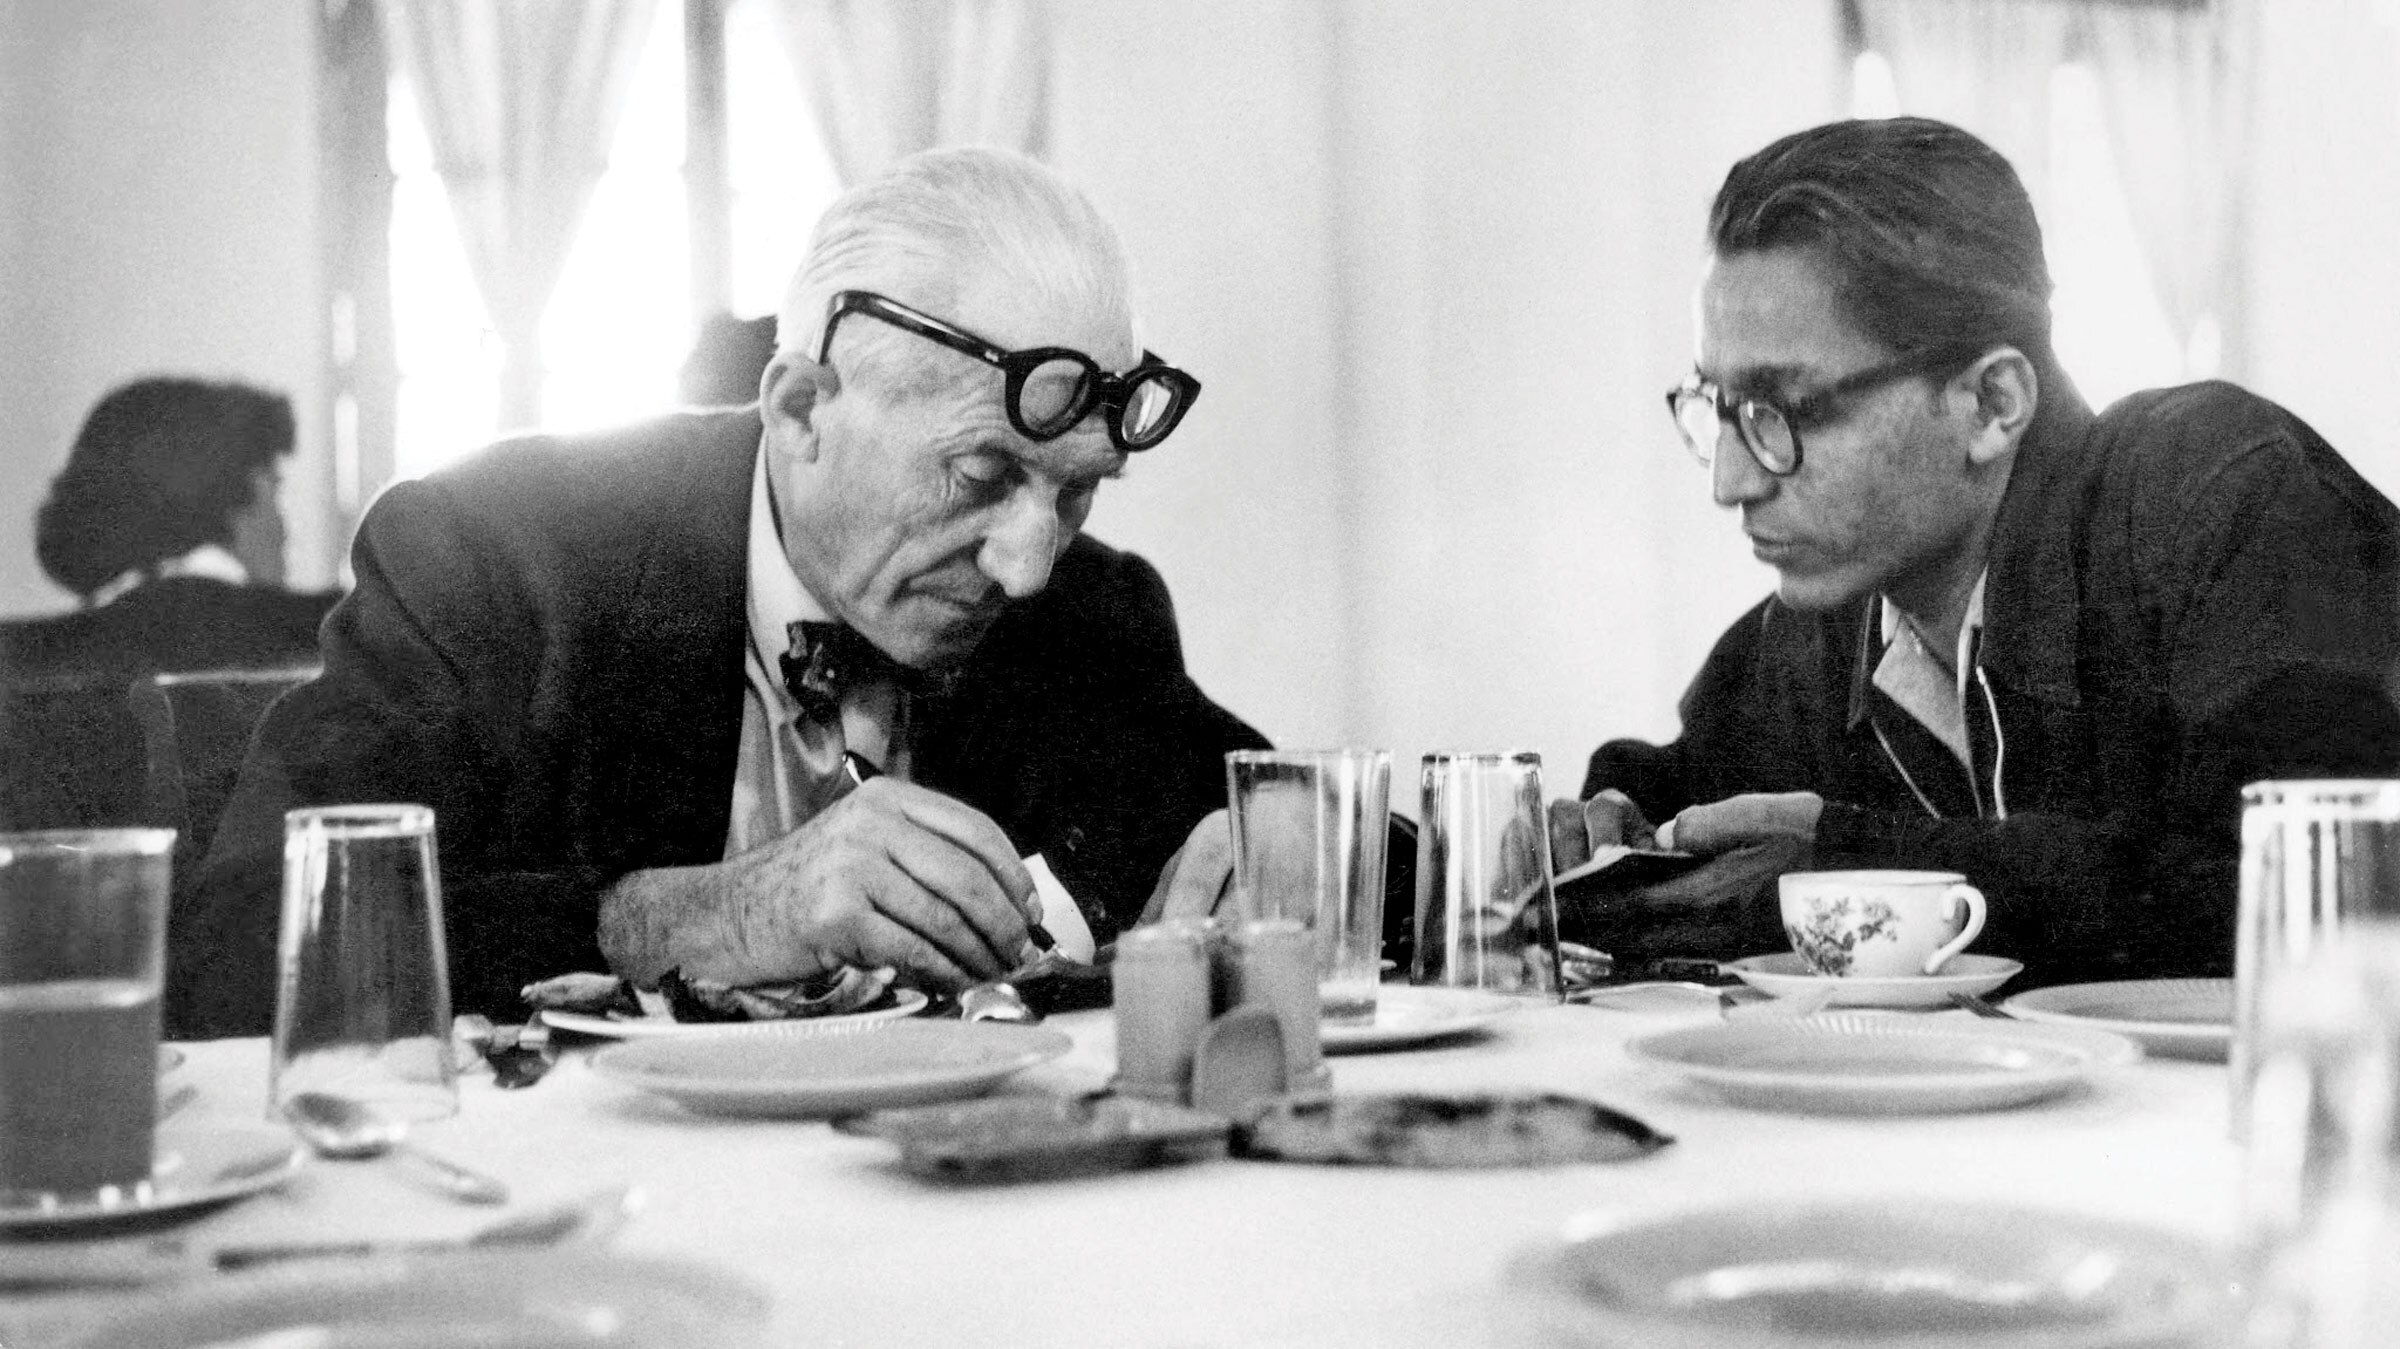 Doshi (right) worked with Le Corbusier on the massive Chandigarh project.